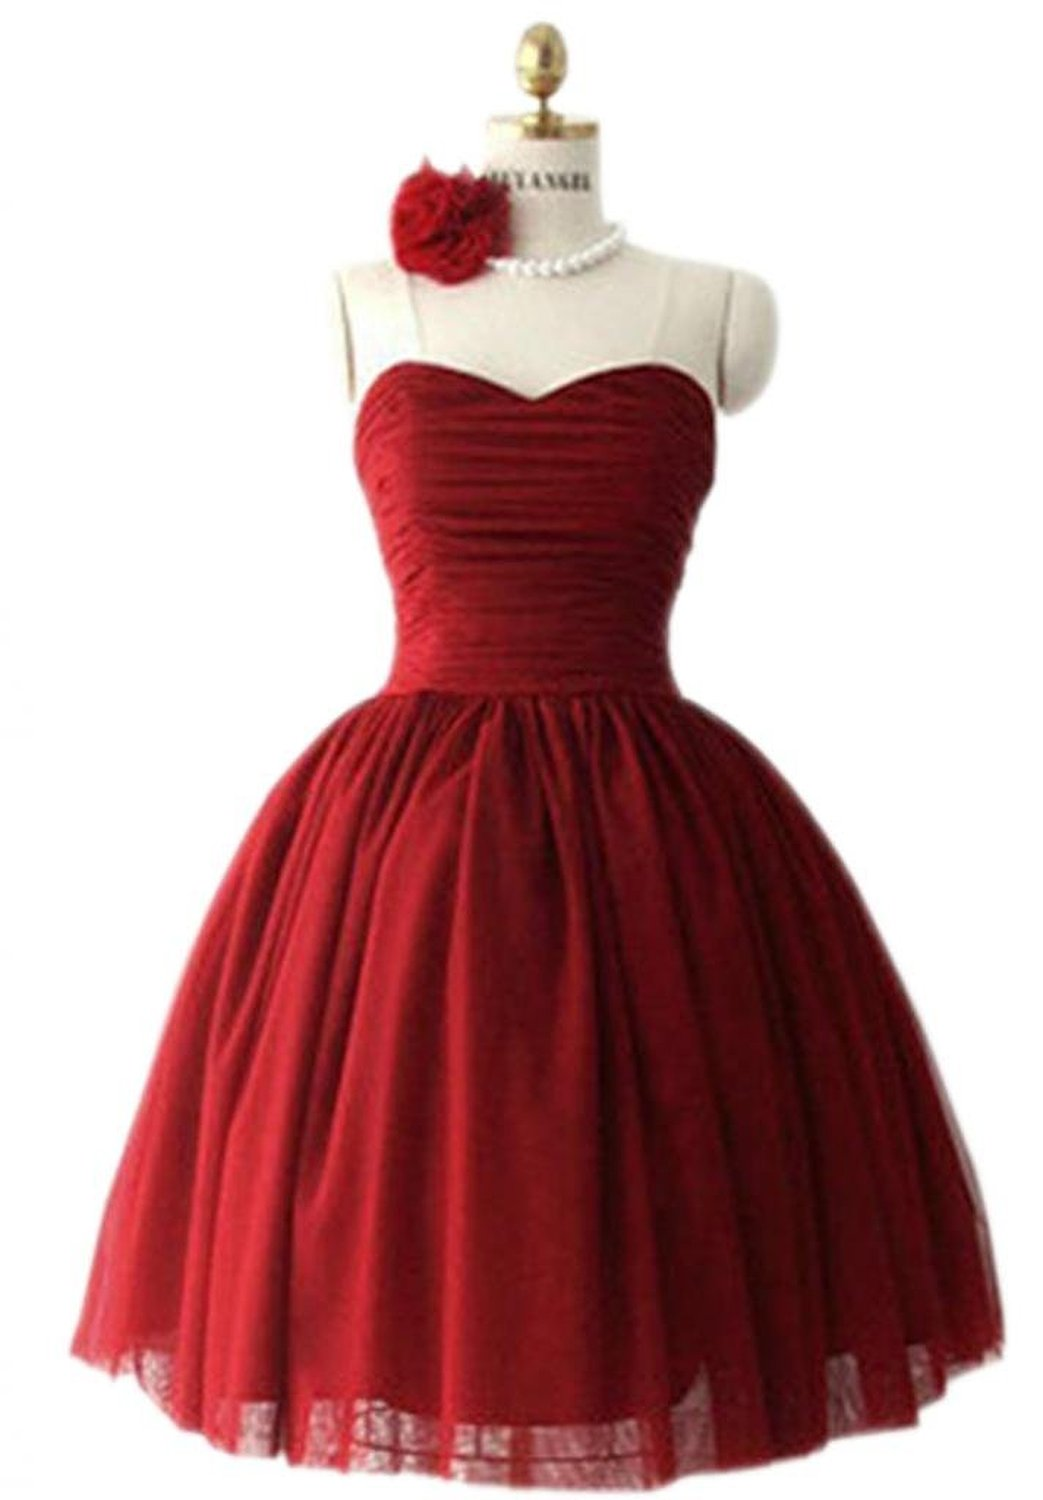 amazon com wedding dresses PrettyDresses Women s Short Burgundy Wedding Party Dress Bridesmaid Dresses at Amazon Women s Clothing store